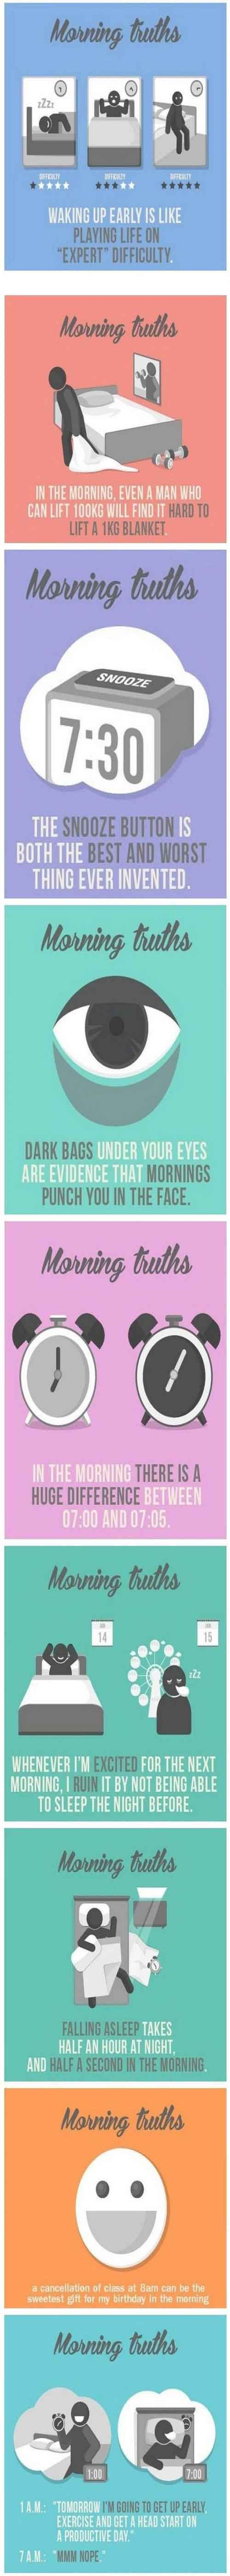 Morning Truths - This Is What Happens In The Morning.